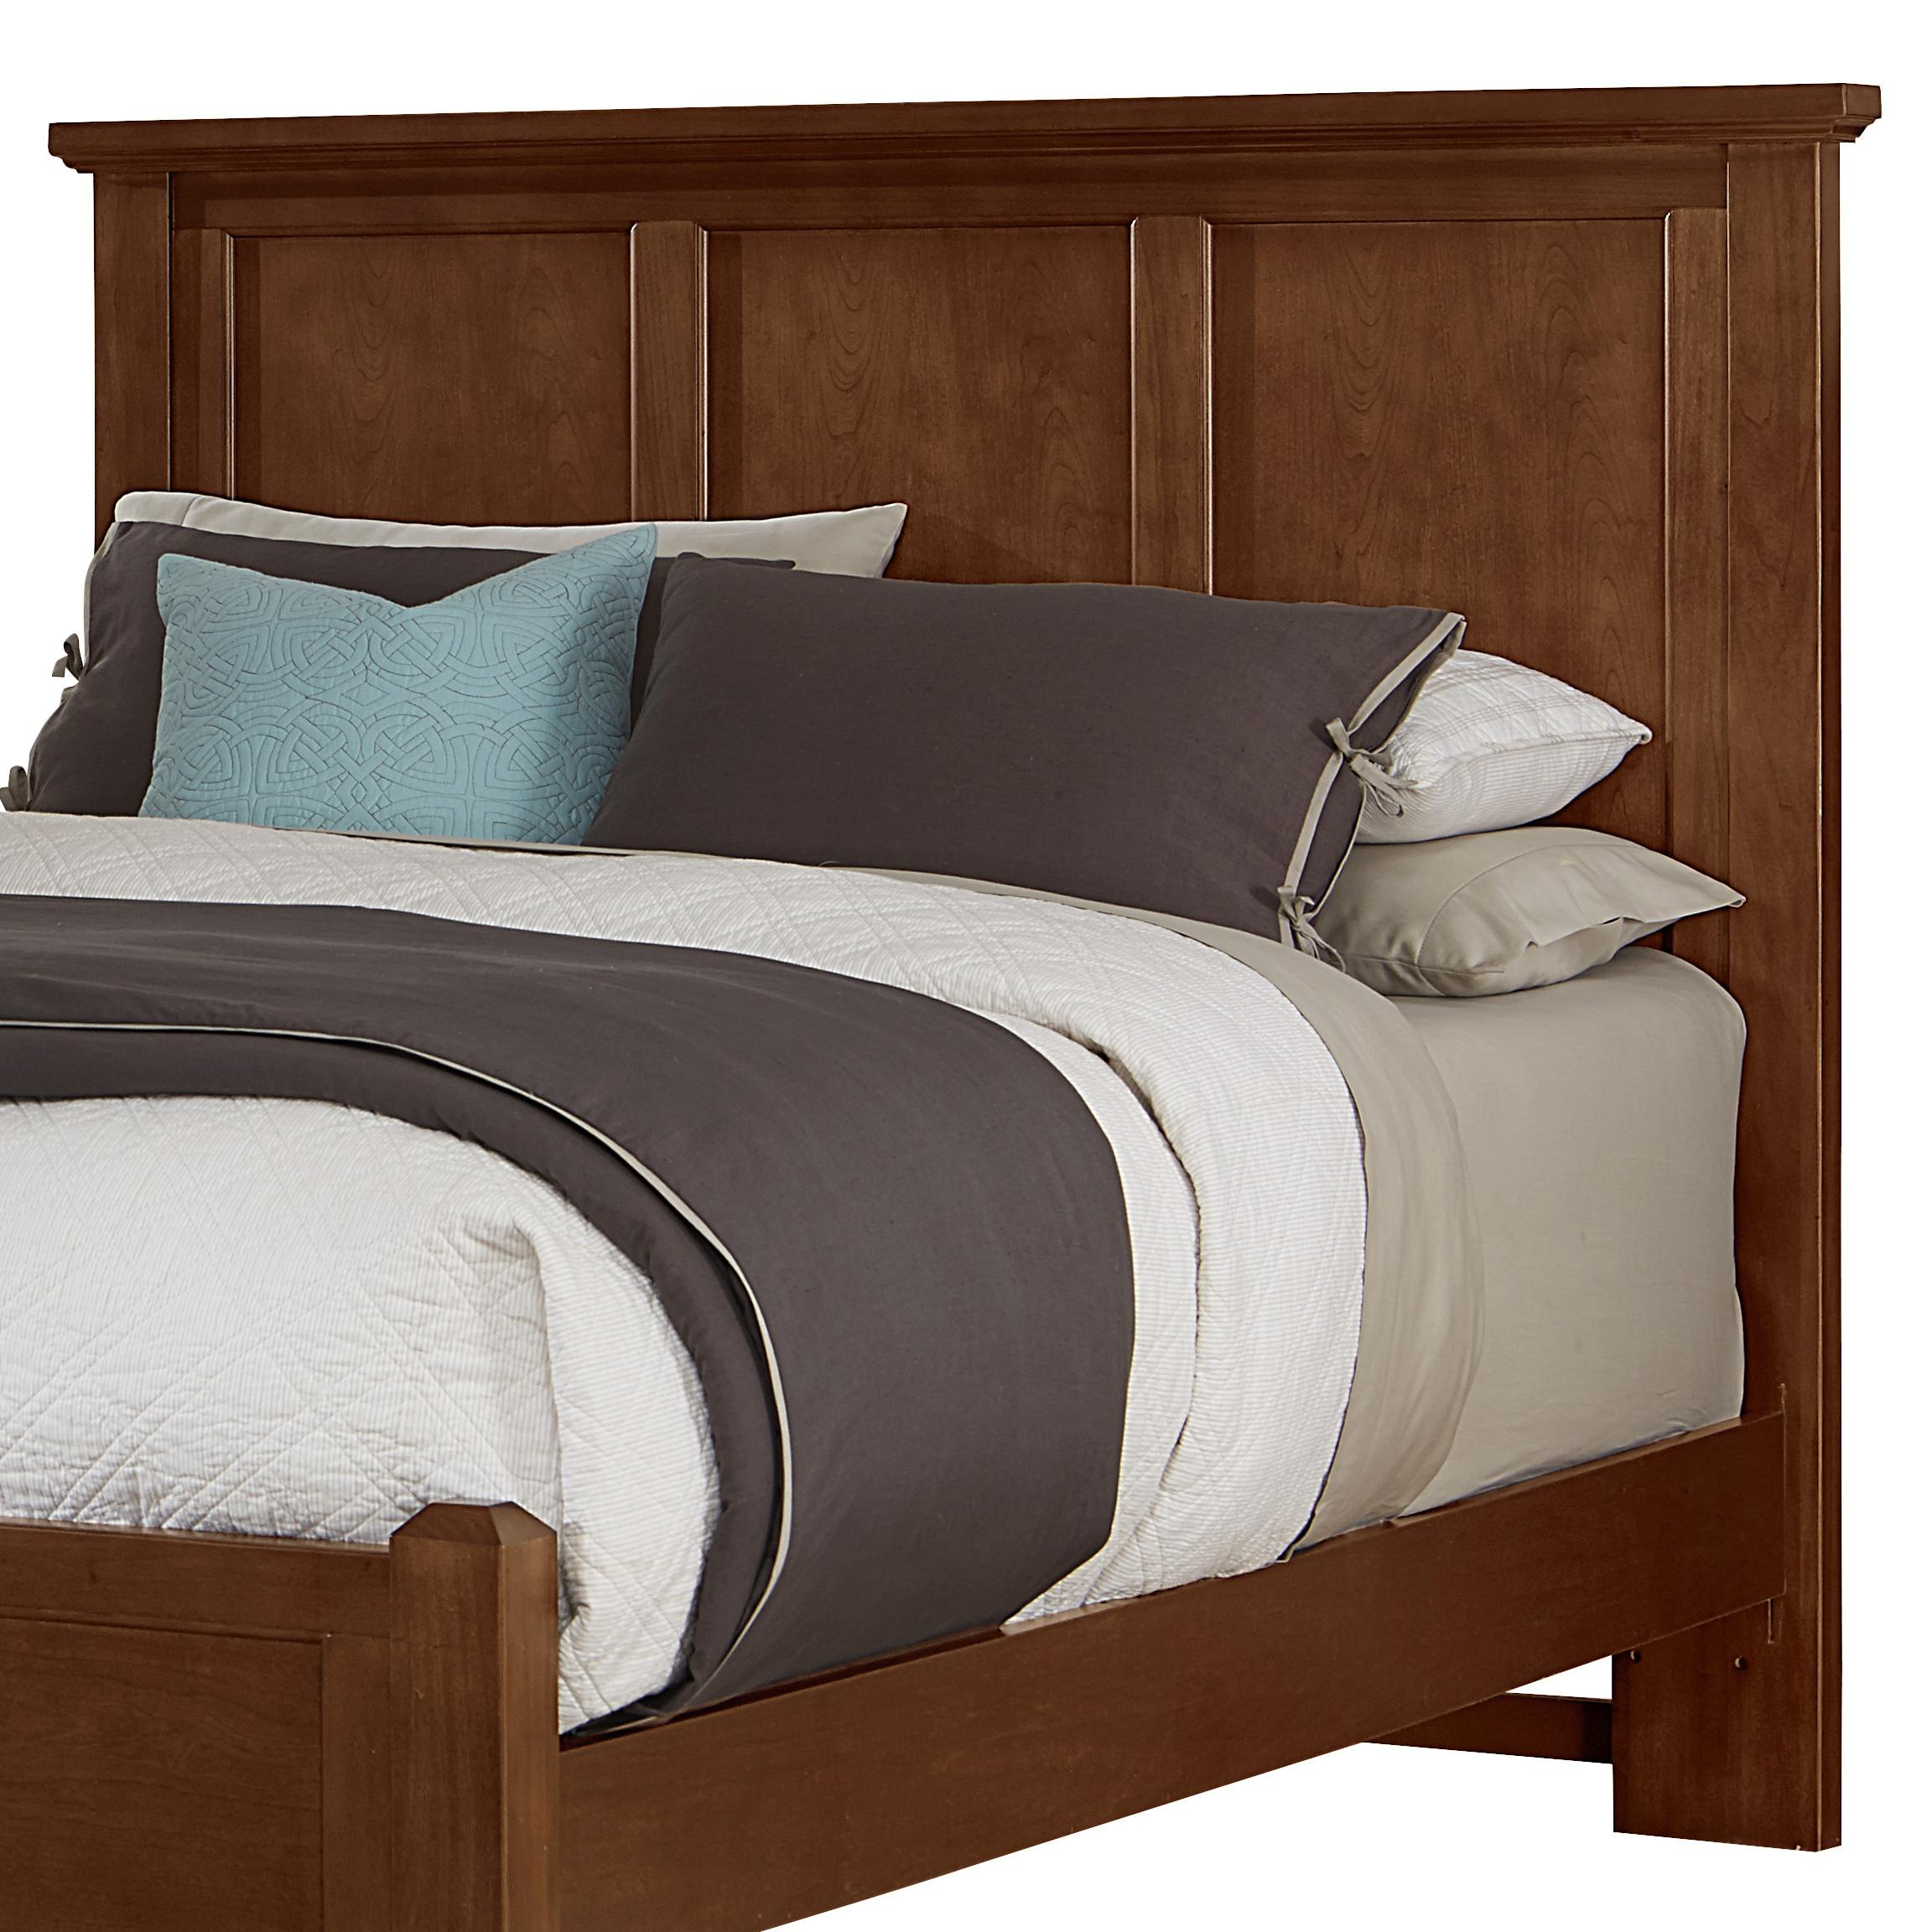 Vaughan Bassett Bonanza Full Mansion Headboard - Item Number: BB28-552